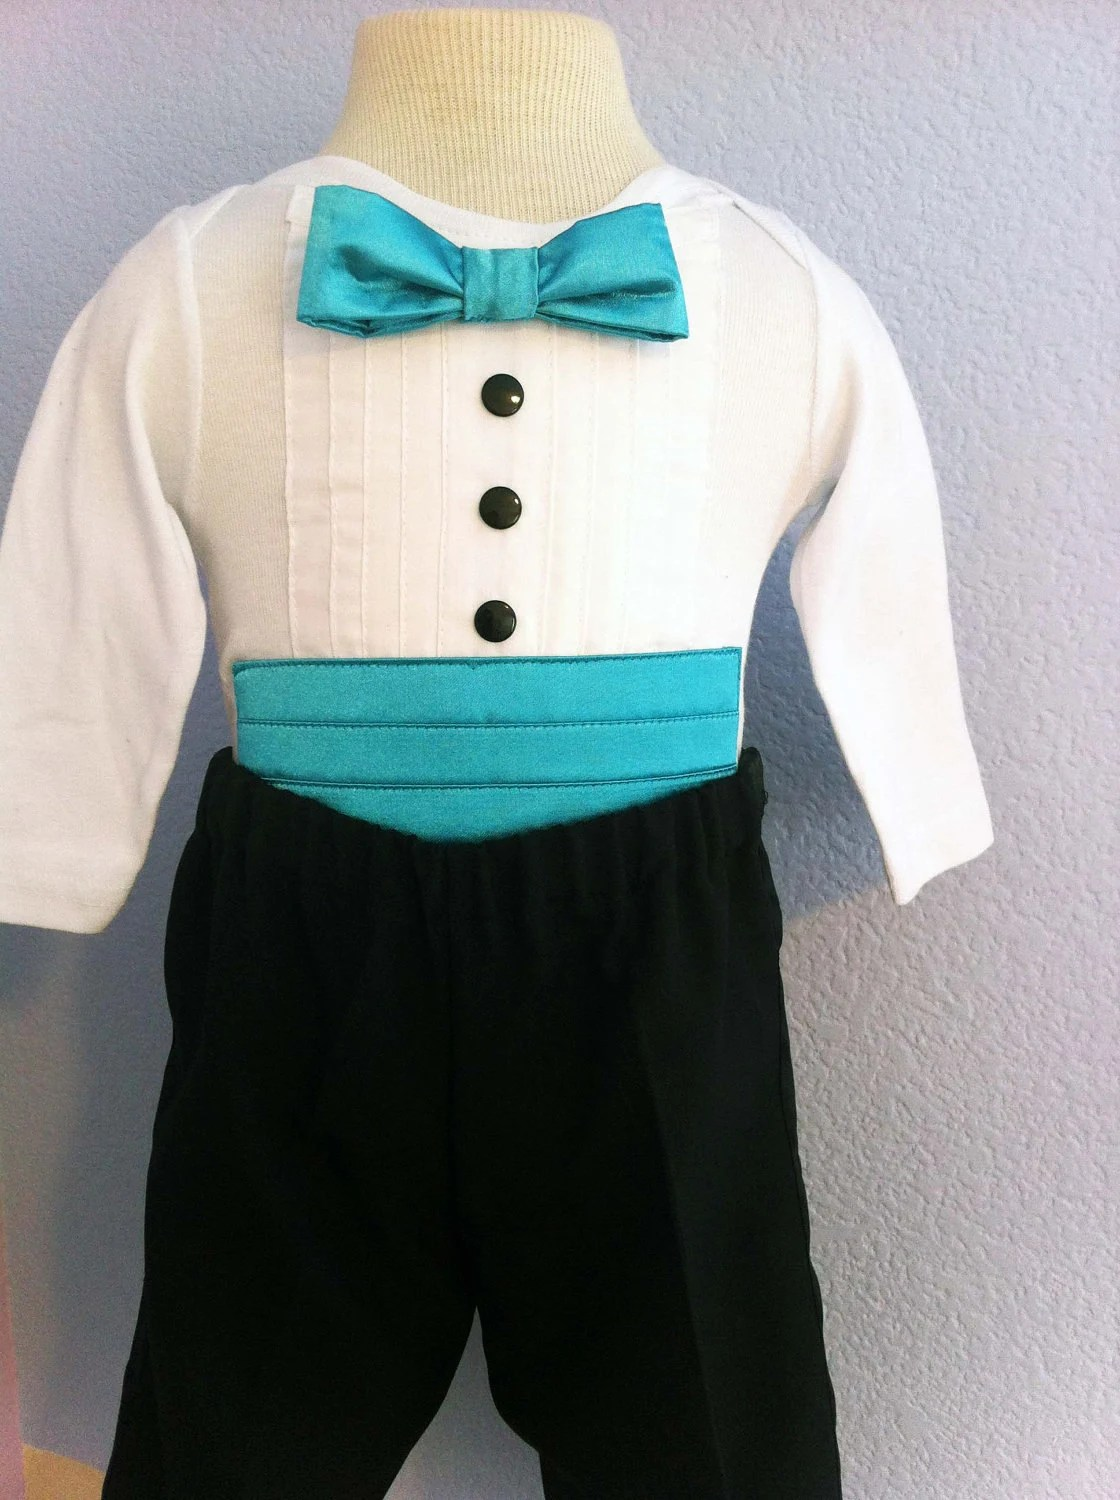 2pc Formal Tuxedo Onesie Cummerbund Teal with Tuxedo Pants (Available in various colors)